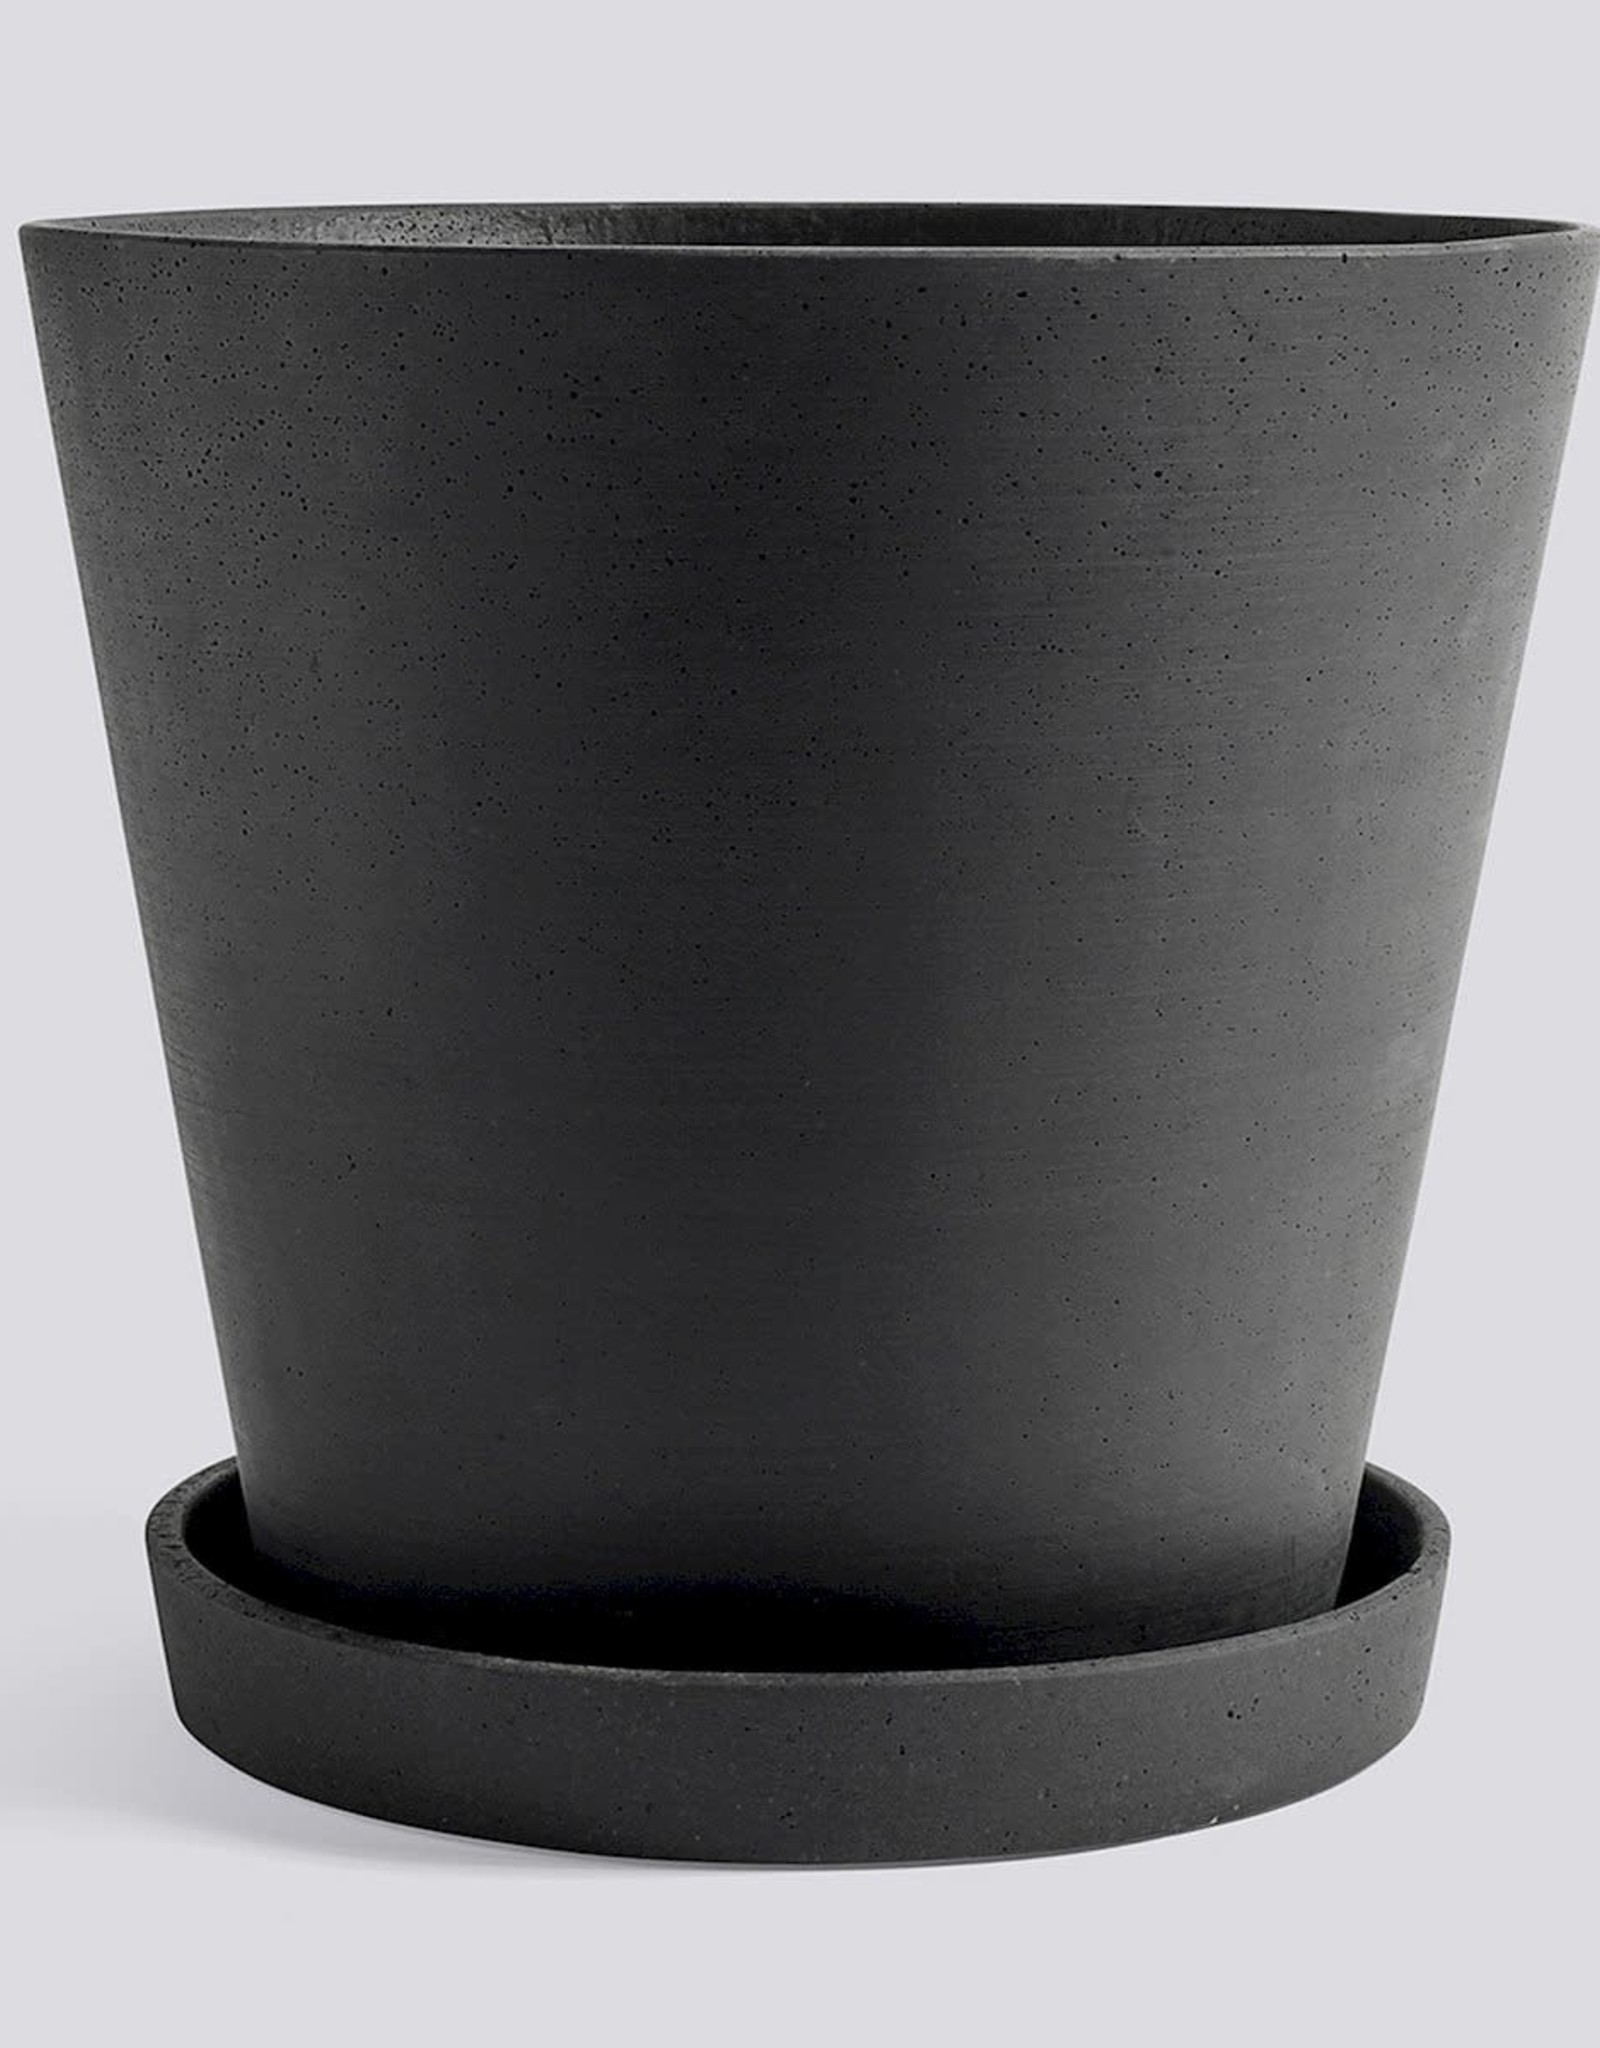 HAY HAY Flowerpot with Saucer XXXL black